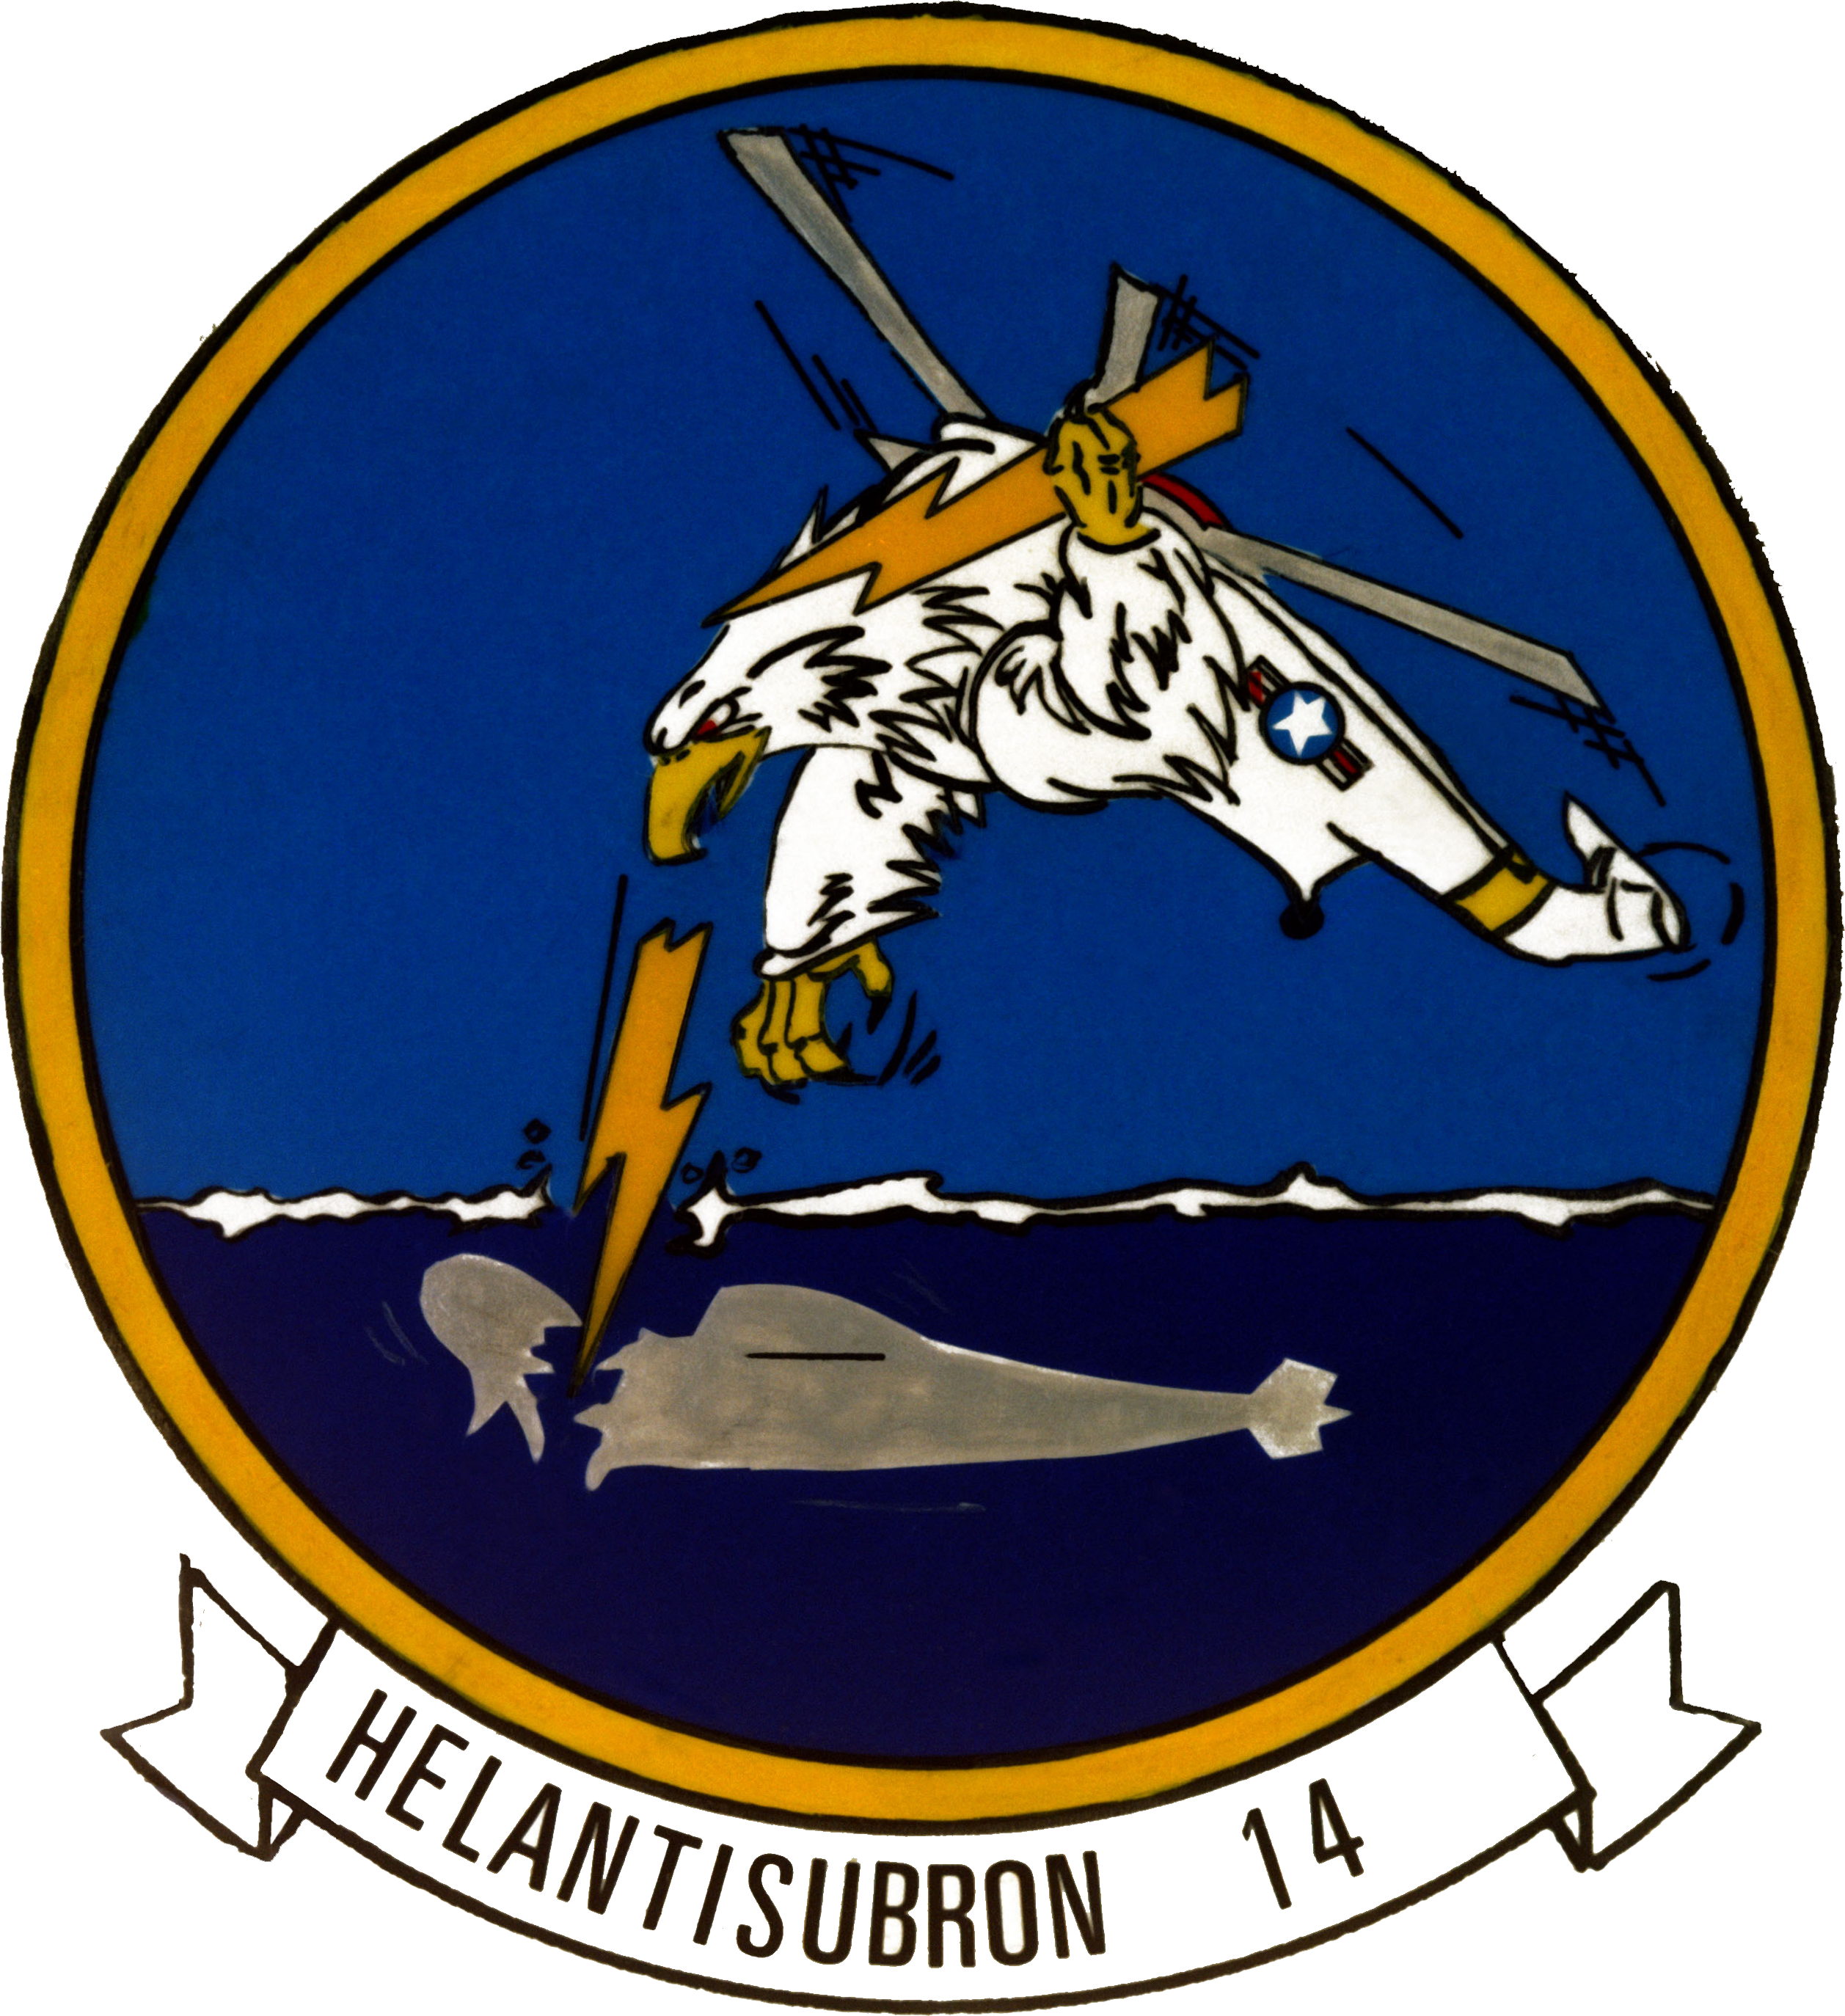 Navy clipart submarine navy. File helicopter anti squadron